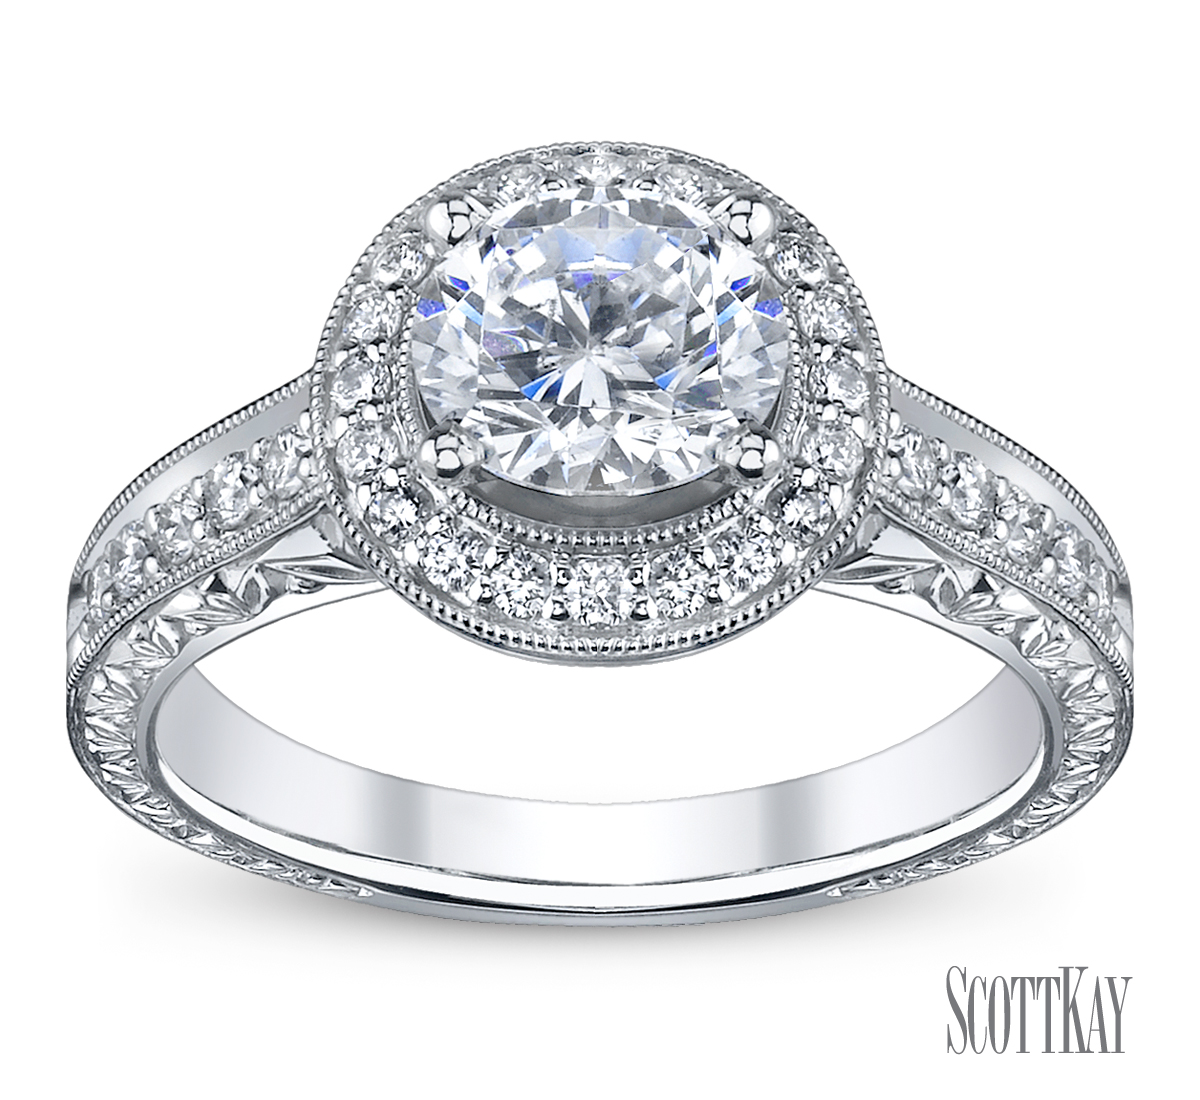 Halo diamond engagement ring robbins brothers engagement for Diamond wedding ring images